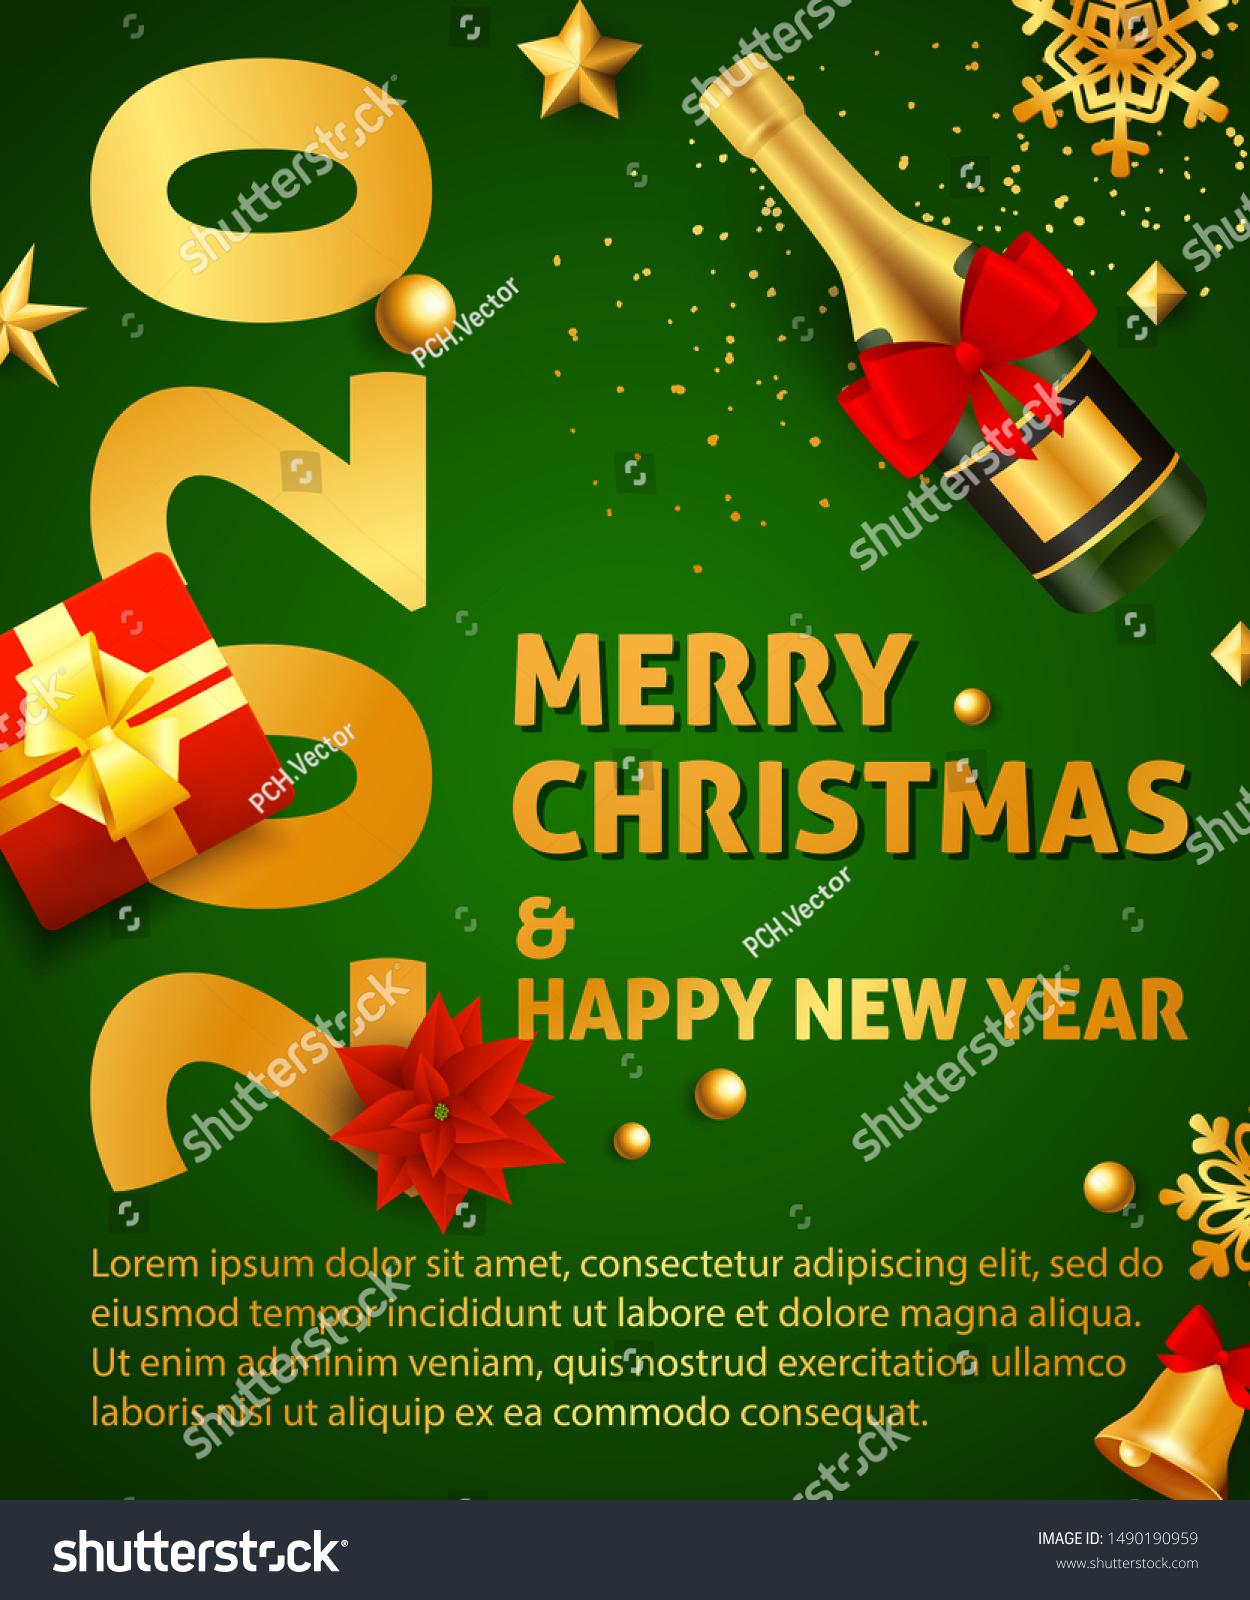 merry christmas two thousand twenty lettering stock vector royalty free 1490190959 https www shutterstock com image vector merry christmas two thousand twenty lettering 1490190959